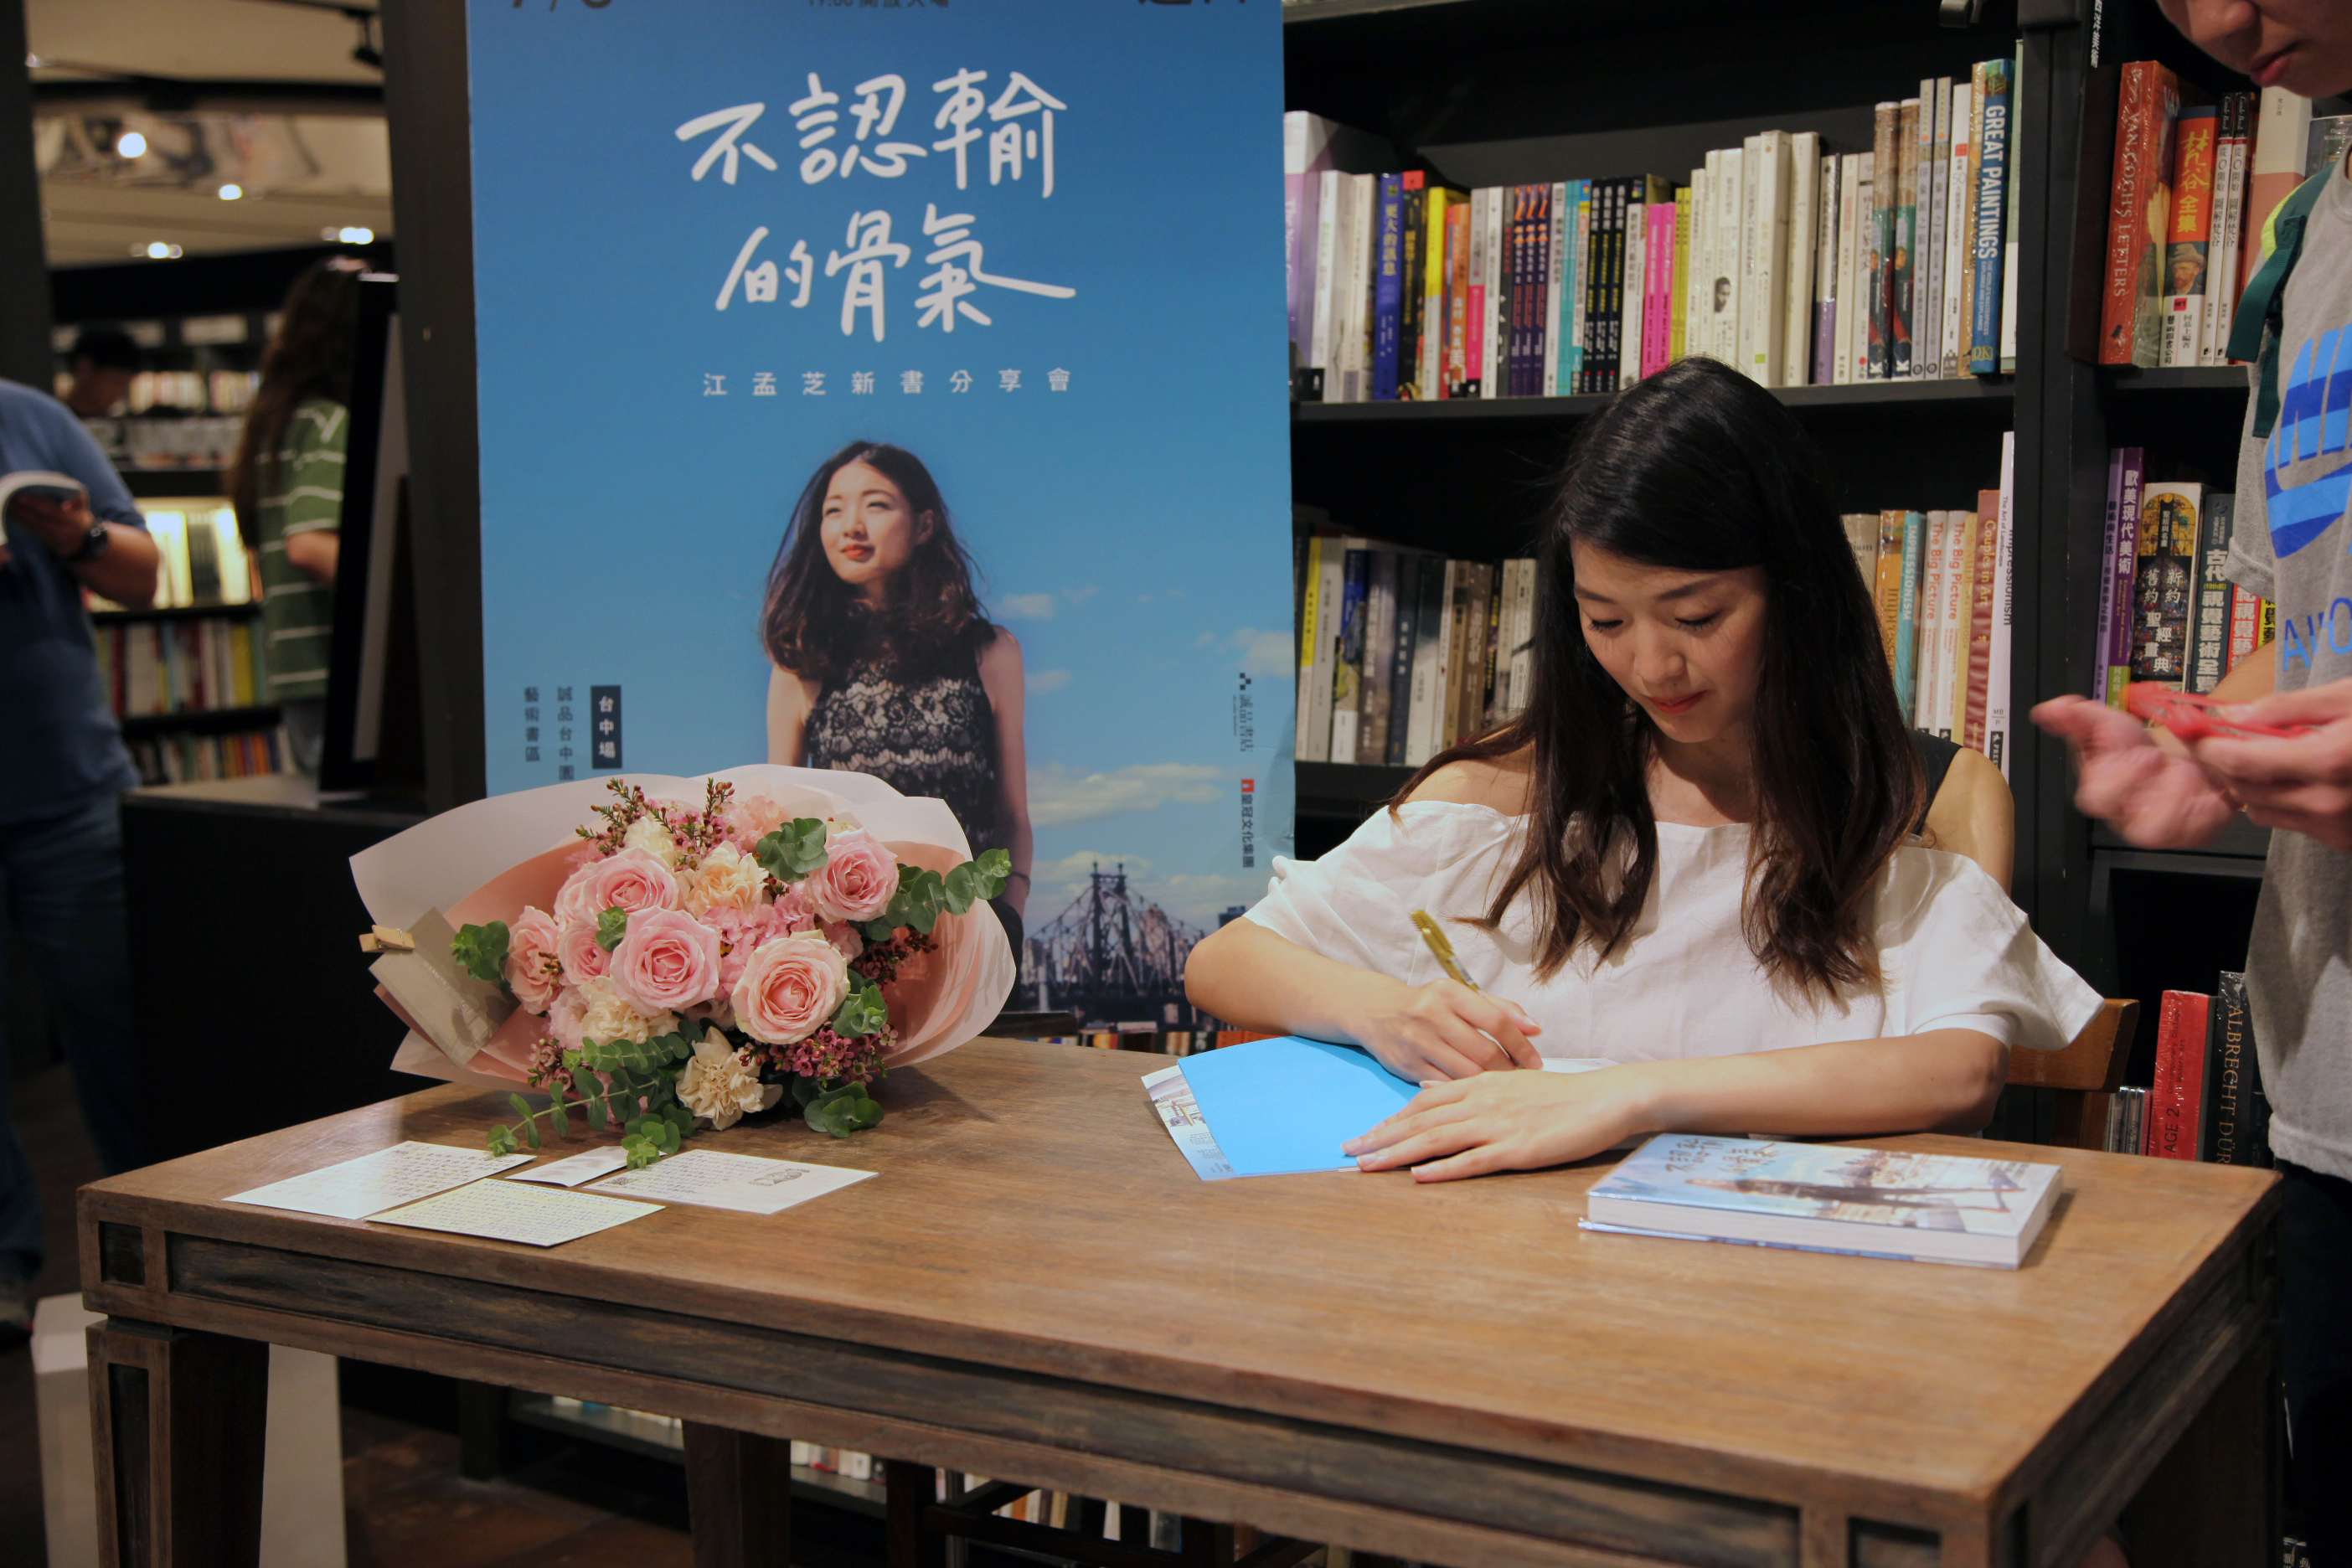 MengChih sitting on a table signing a copy of her book in a bookstore.